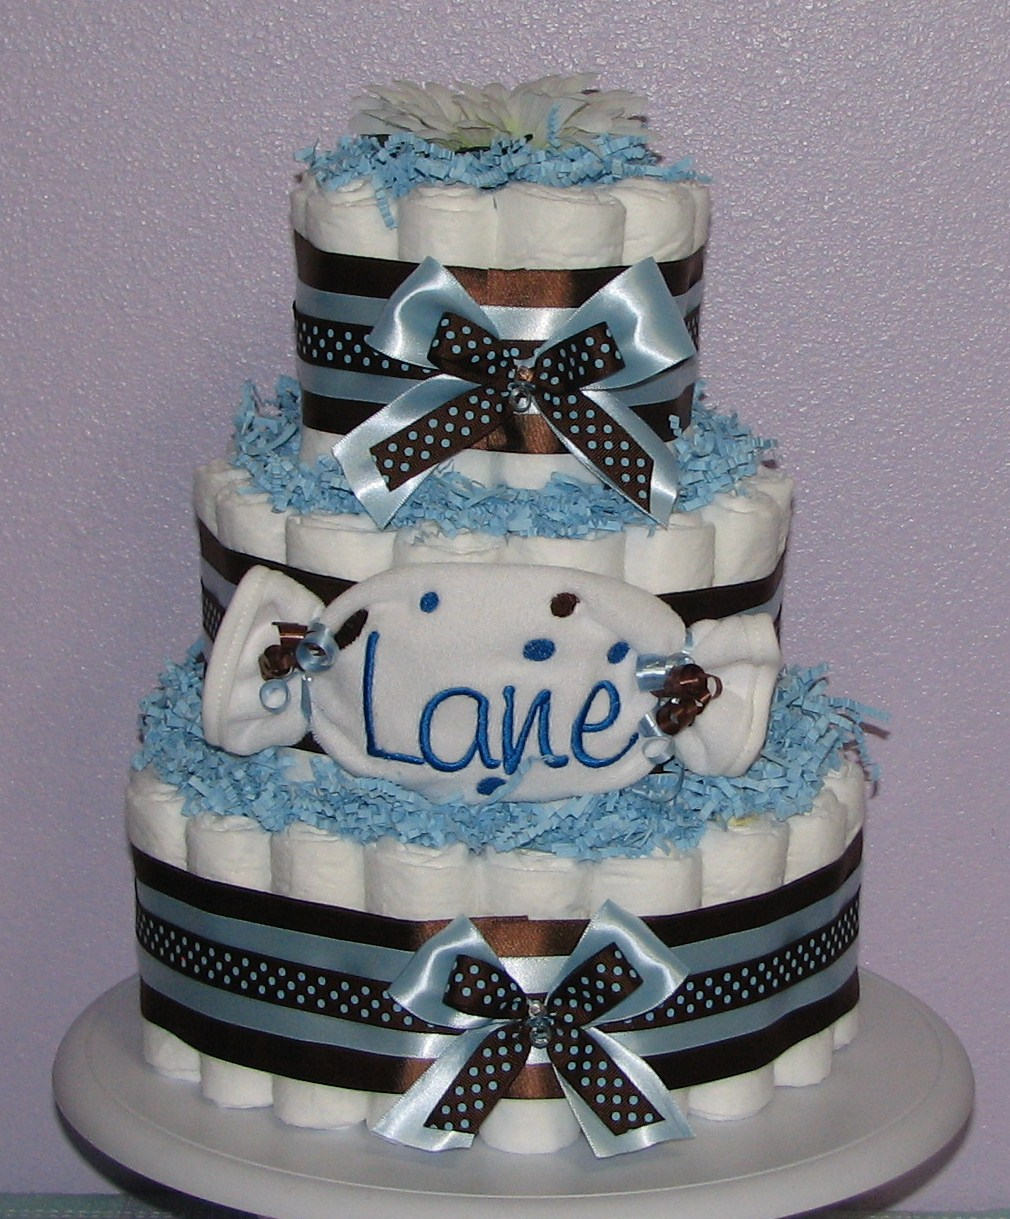 Blue-Brown-Polka-Dot-Diaper-Cake.JPG - Blue & Brown Polka Dot Diaper Cake